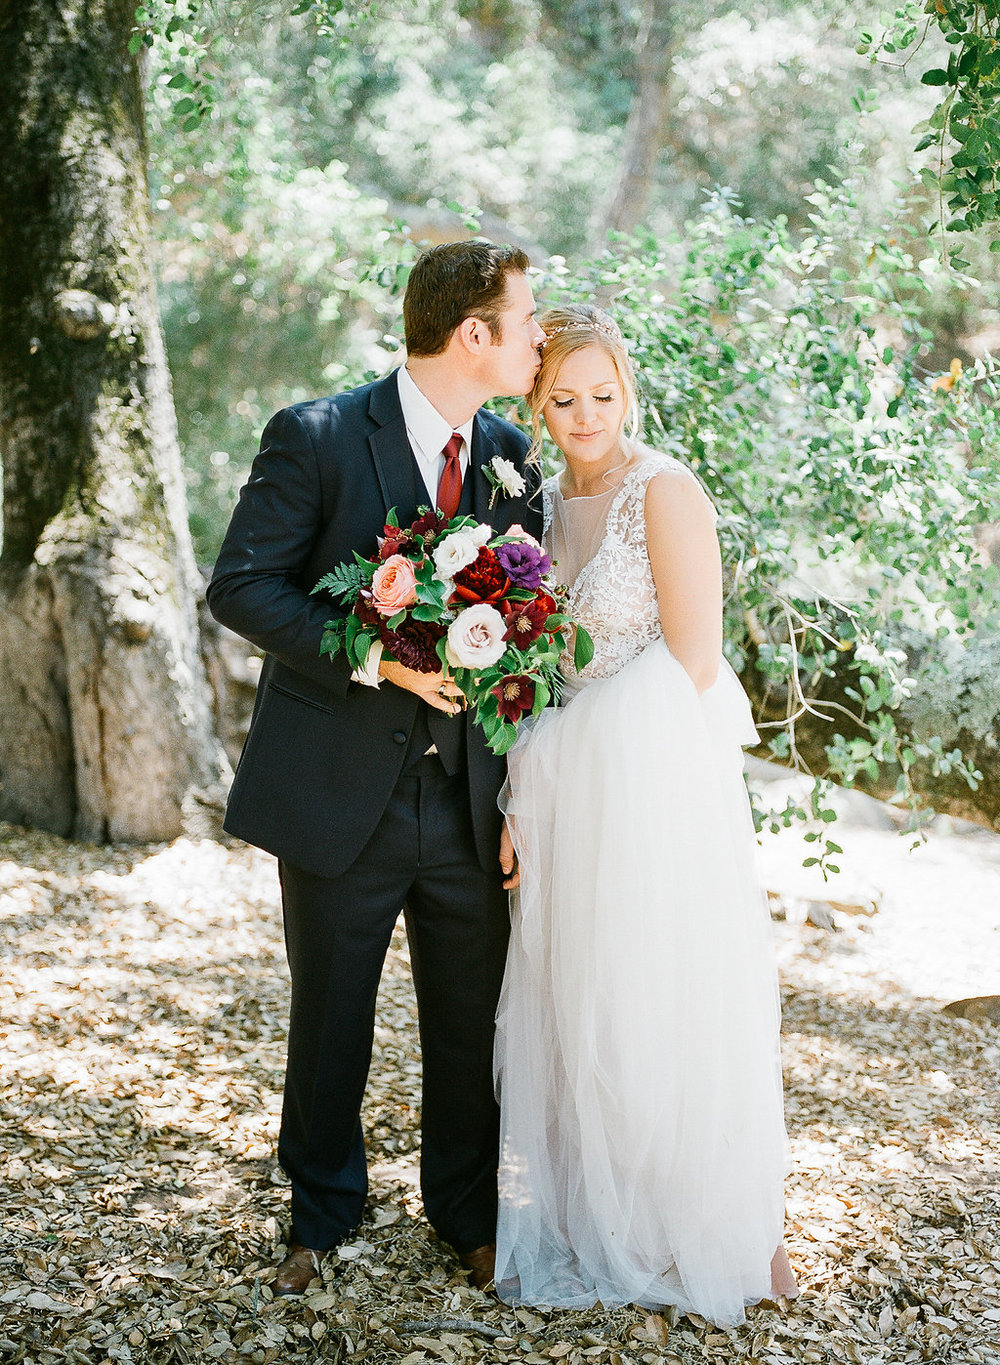 Romantic, jewel tone bridal bouquet by Compass Floral | Fallbrook Treehouse, Fallbrook